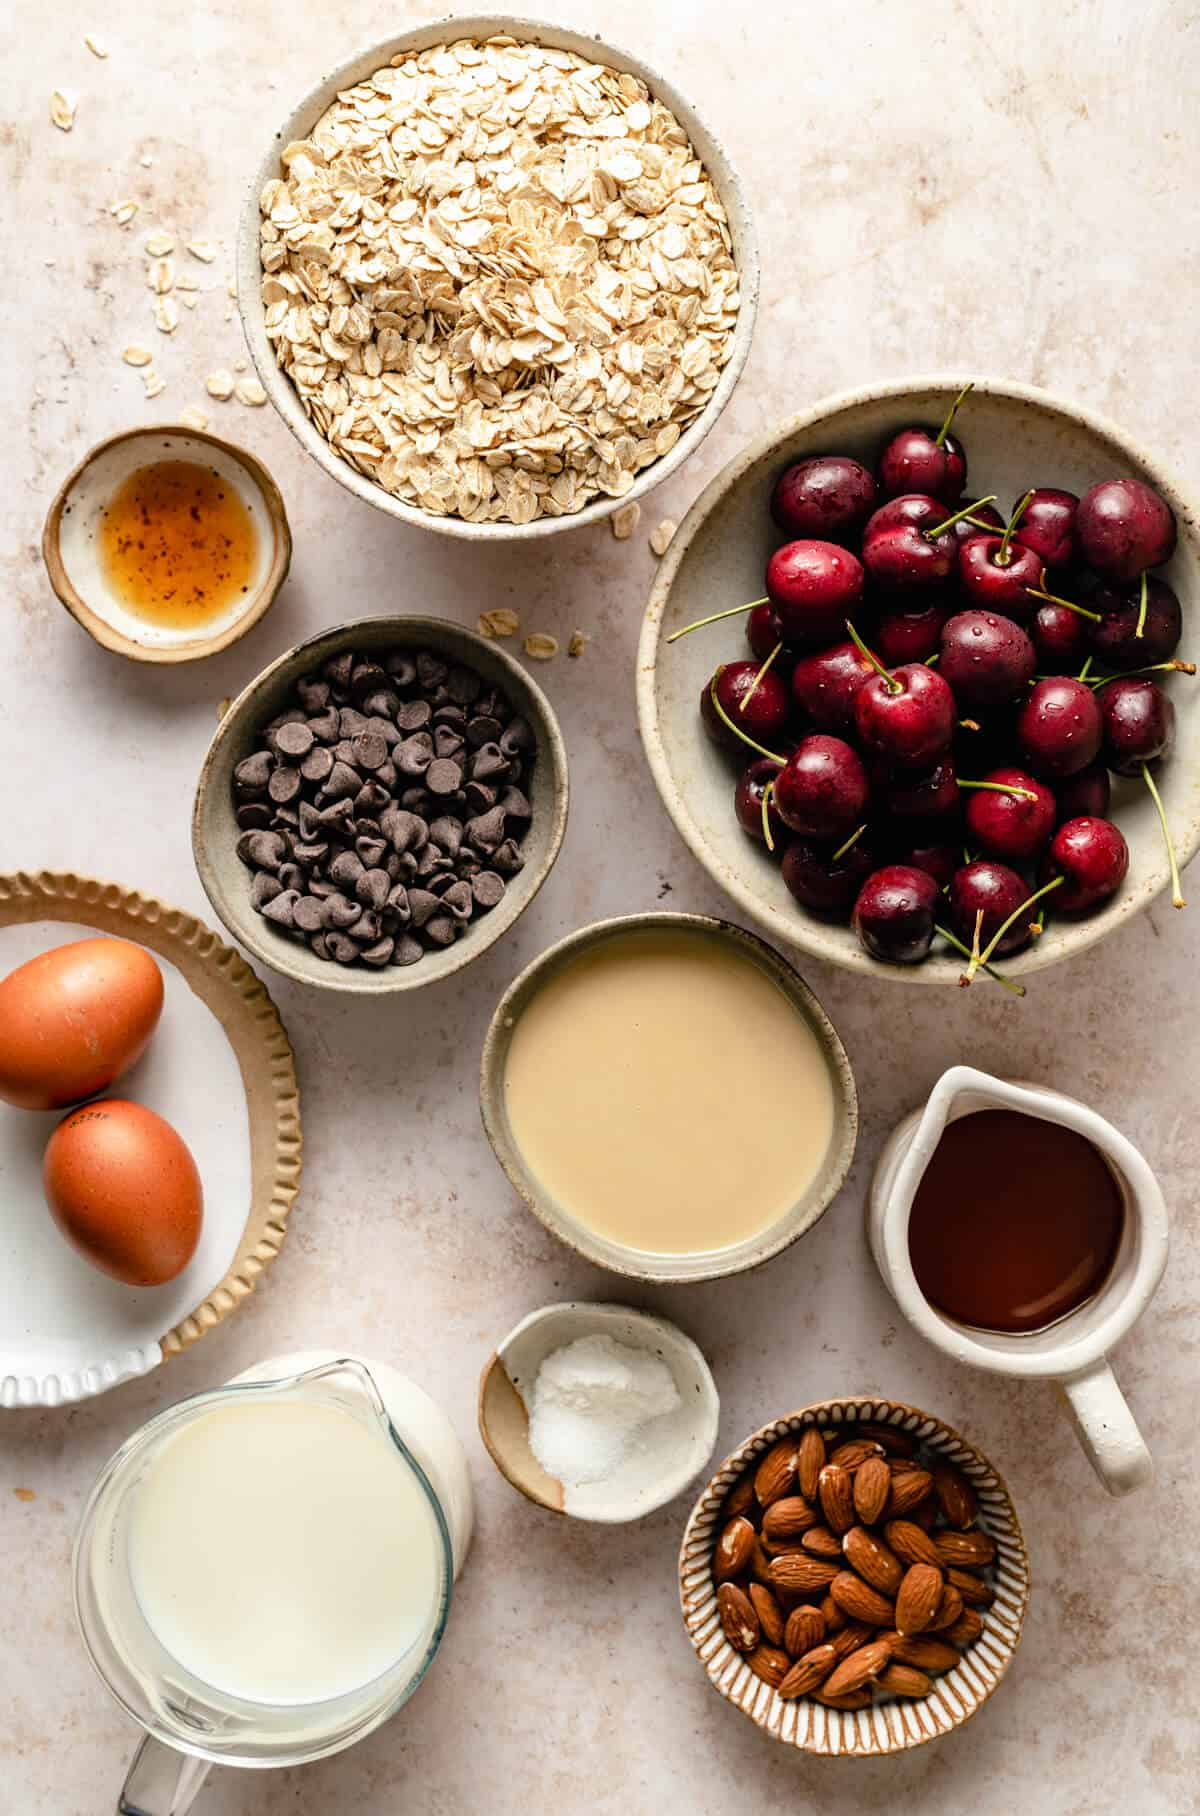 an array of bowls of ingredients including, cherries, chocolate chips, tahini, maple syrup, oats, eggs, milk and almonds